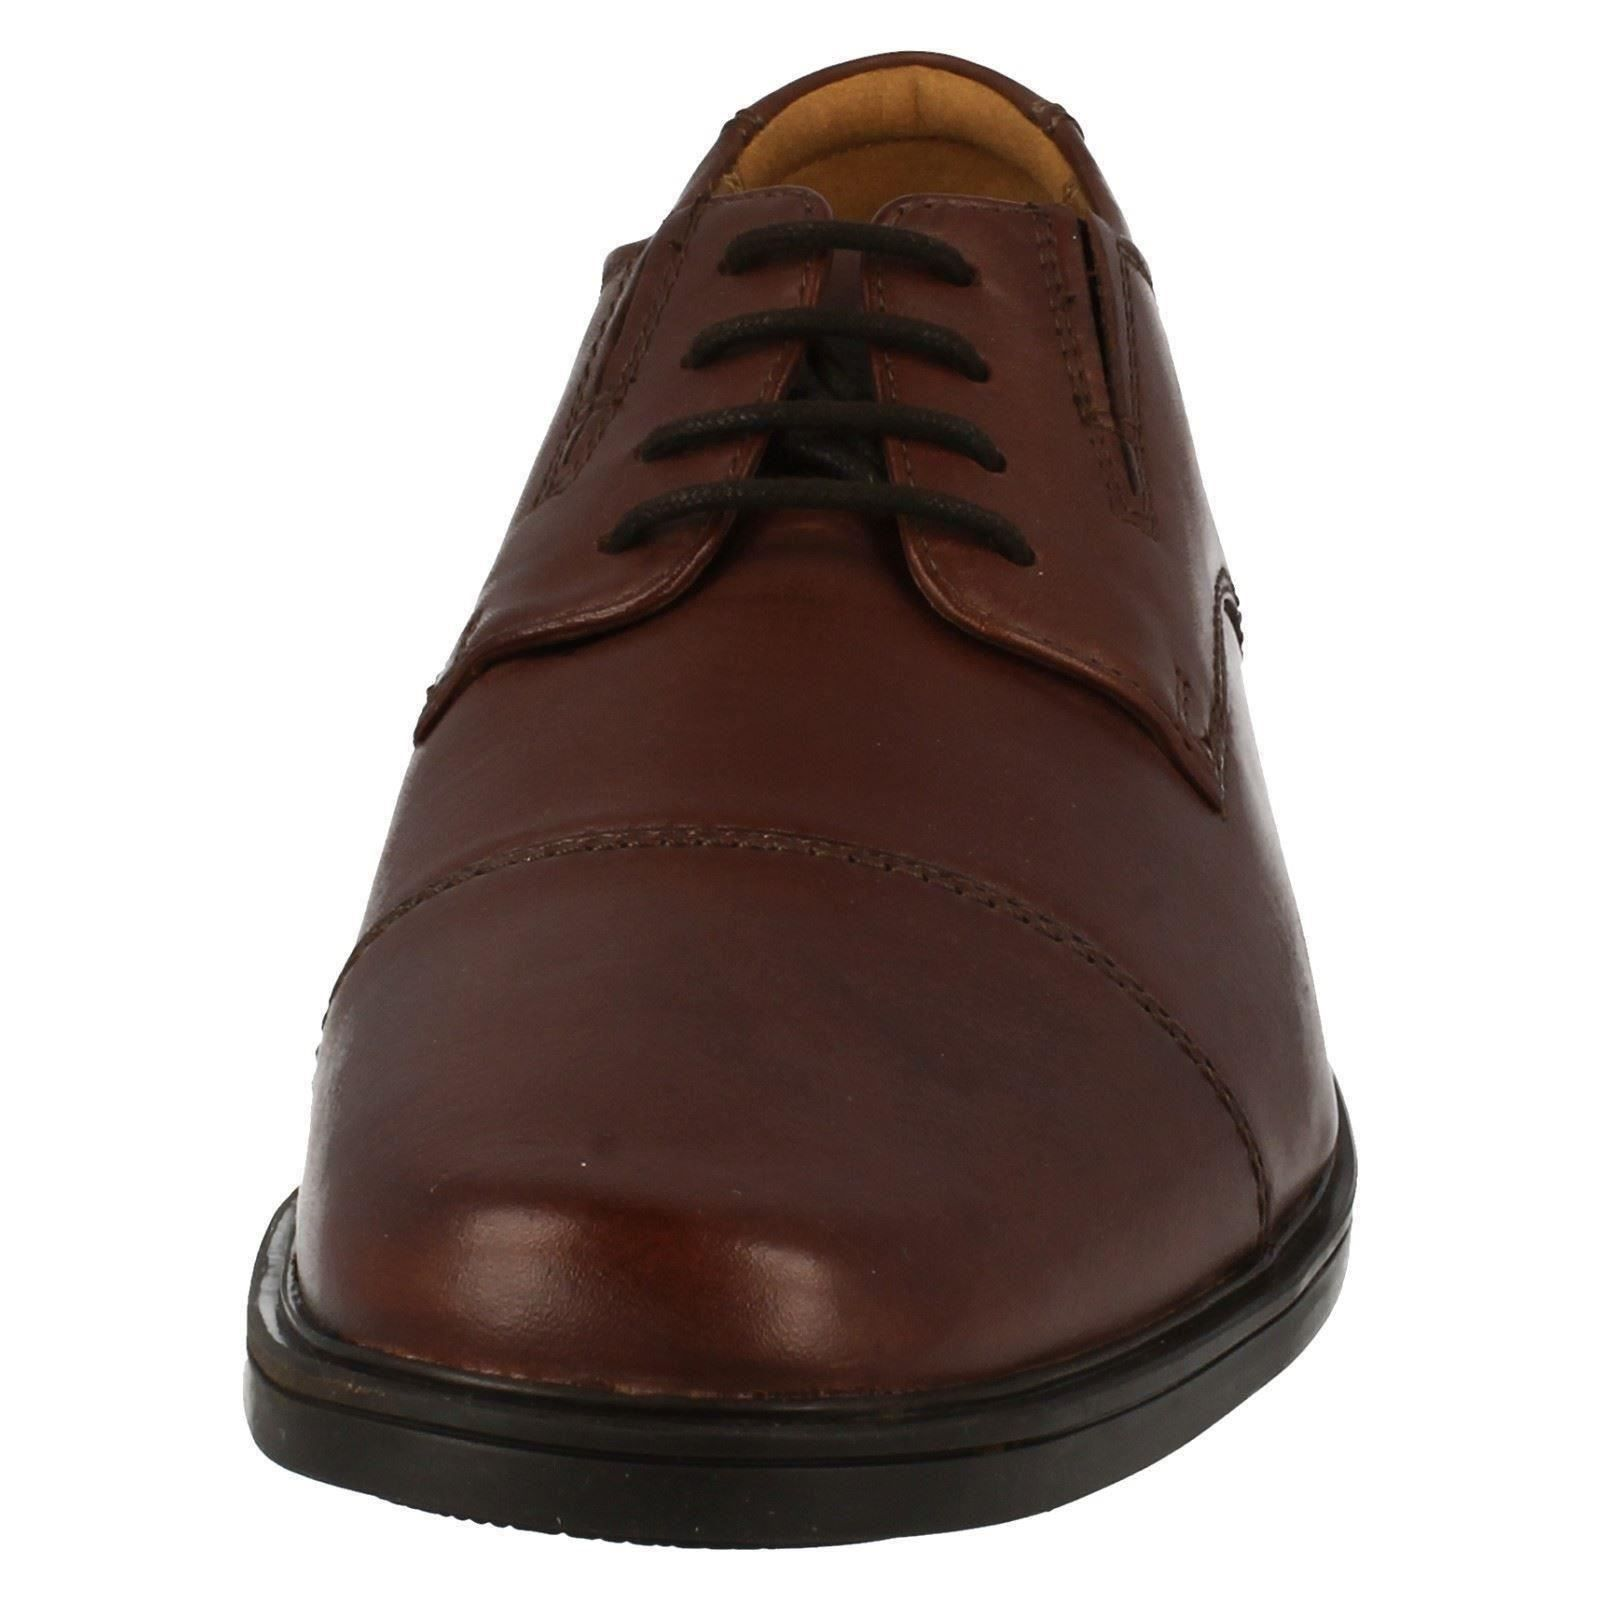 Mens-Clarks-Formal-Lace-Up-Shoes-Tilden-Cap thumbnail 17